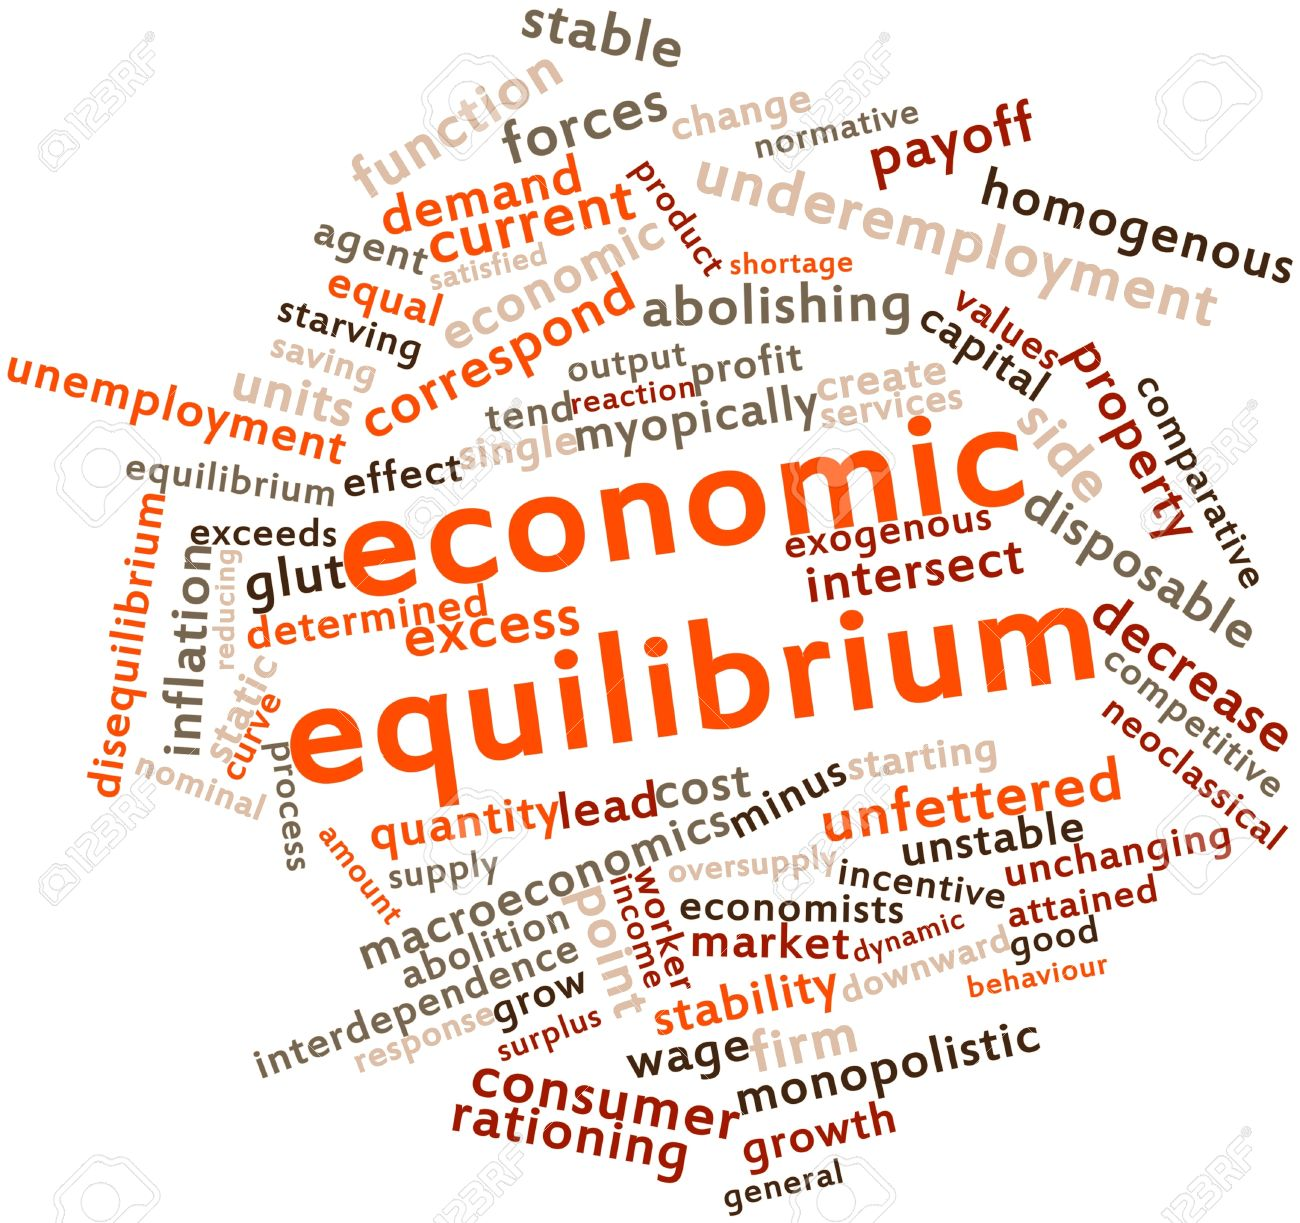 Economic Terms To Know Economics A Z Terms Beginning With A The  Abstract Word Cloud For Economic Equilibrium With Related Tags And Terms Stock Photo Economic Terms To Know